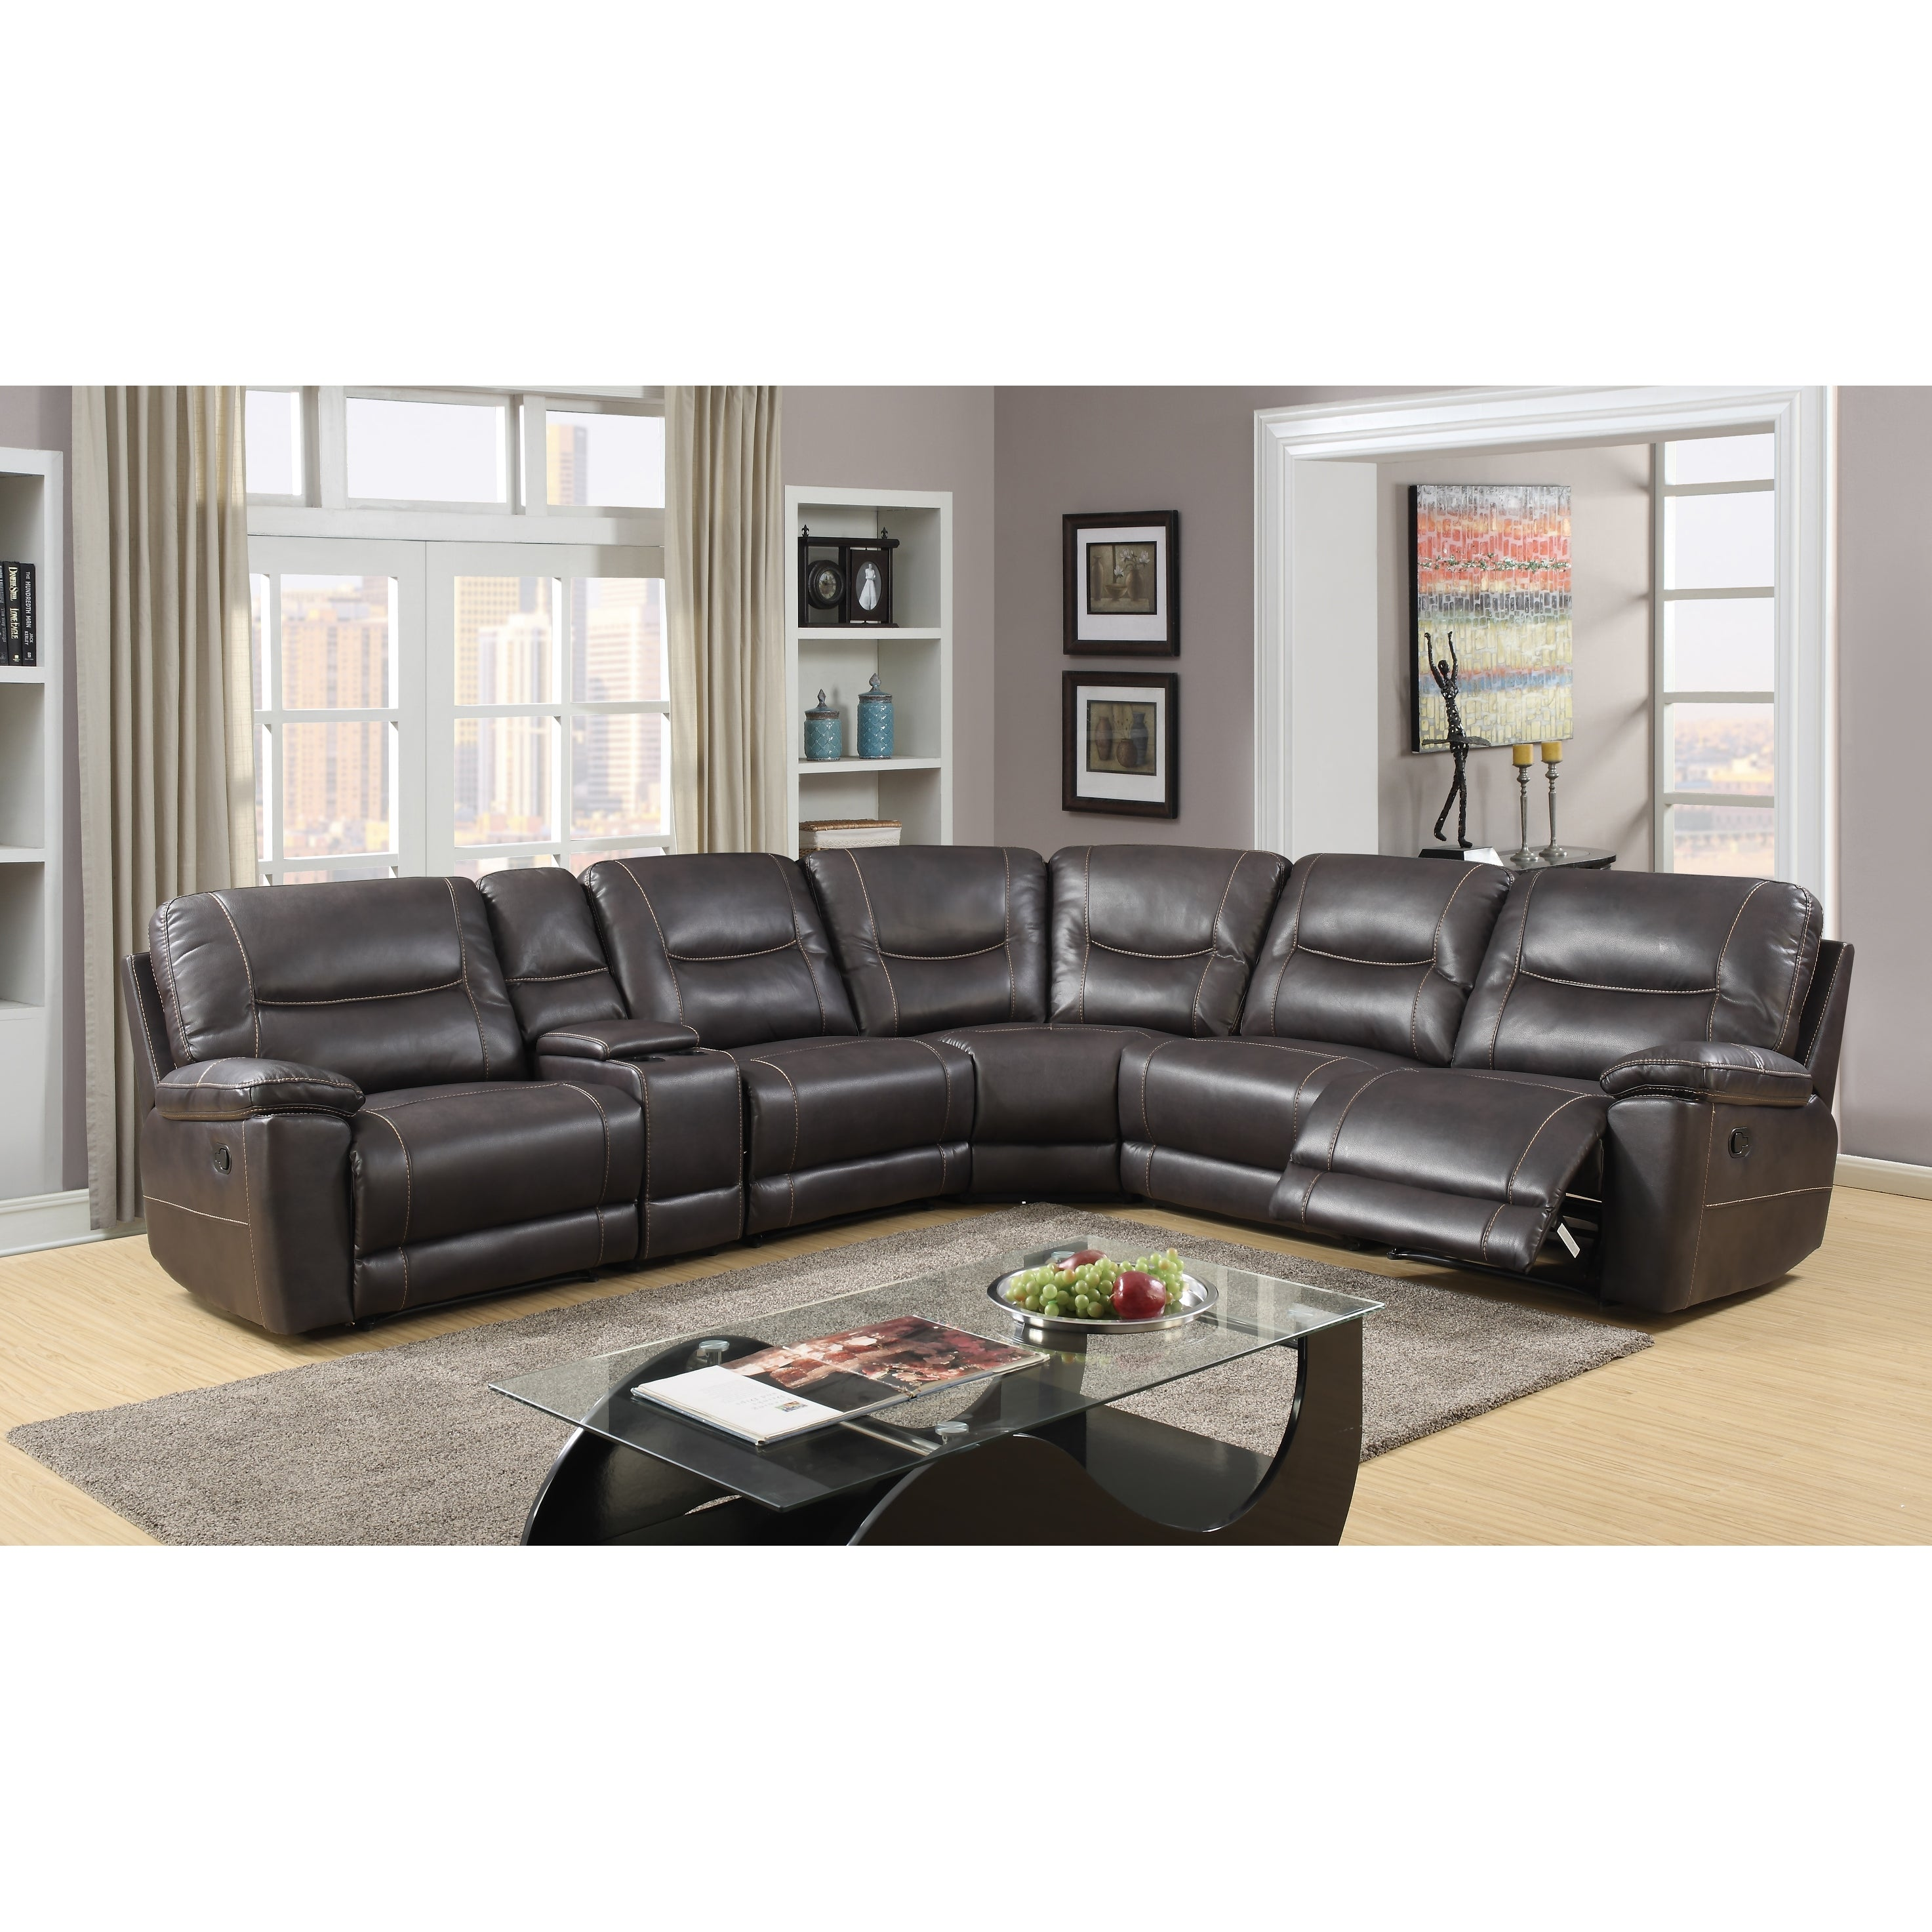 Shop Leather Air Match Upholstered Living Room Sectional With Recliner Overstock 17783683